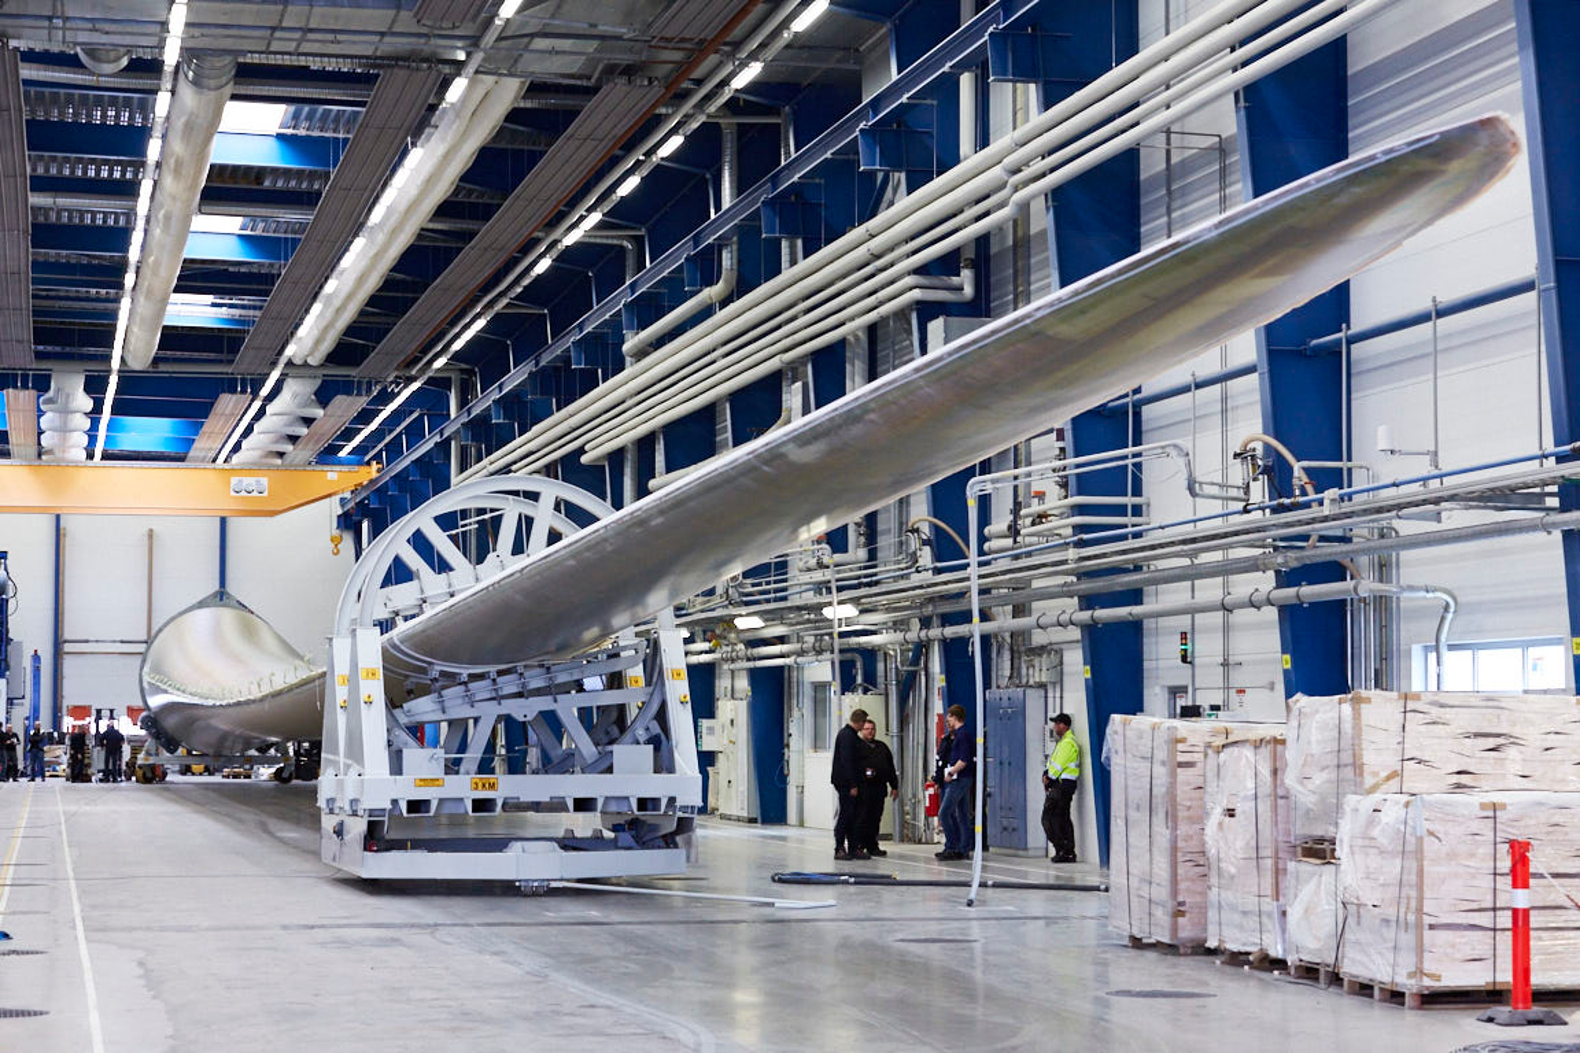 World's longest wind turbine blade expected to drive down offshore energy costs